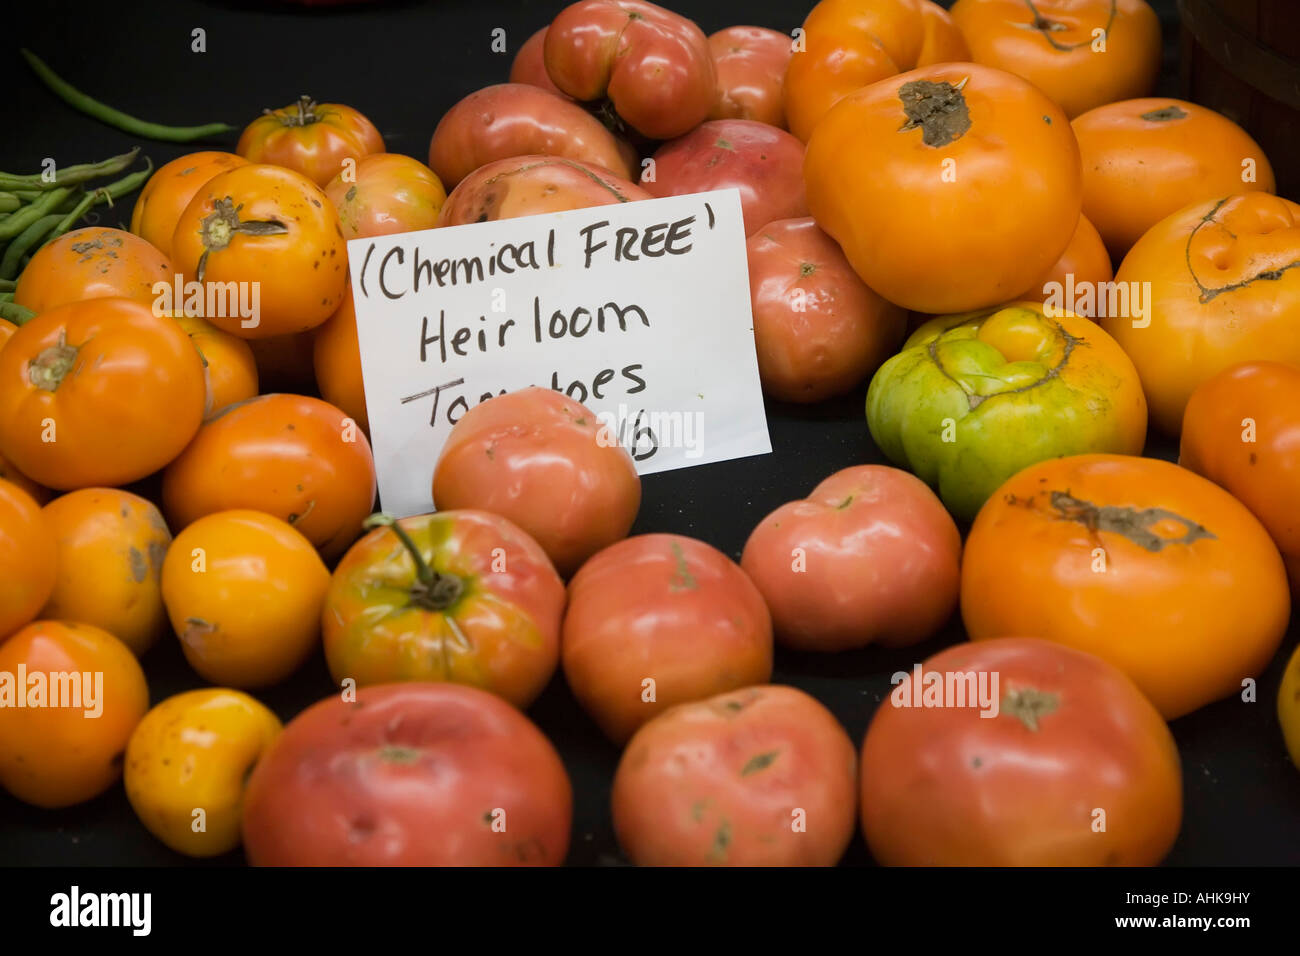 Elkhart Indiana Chemical free heirloom tomatoes on sale at the Midwest Farmers Market - Stock Image